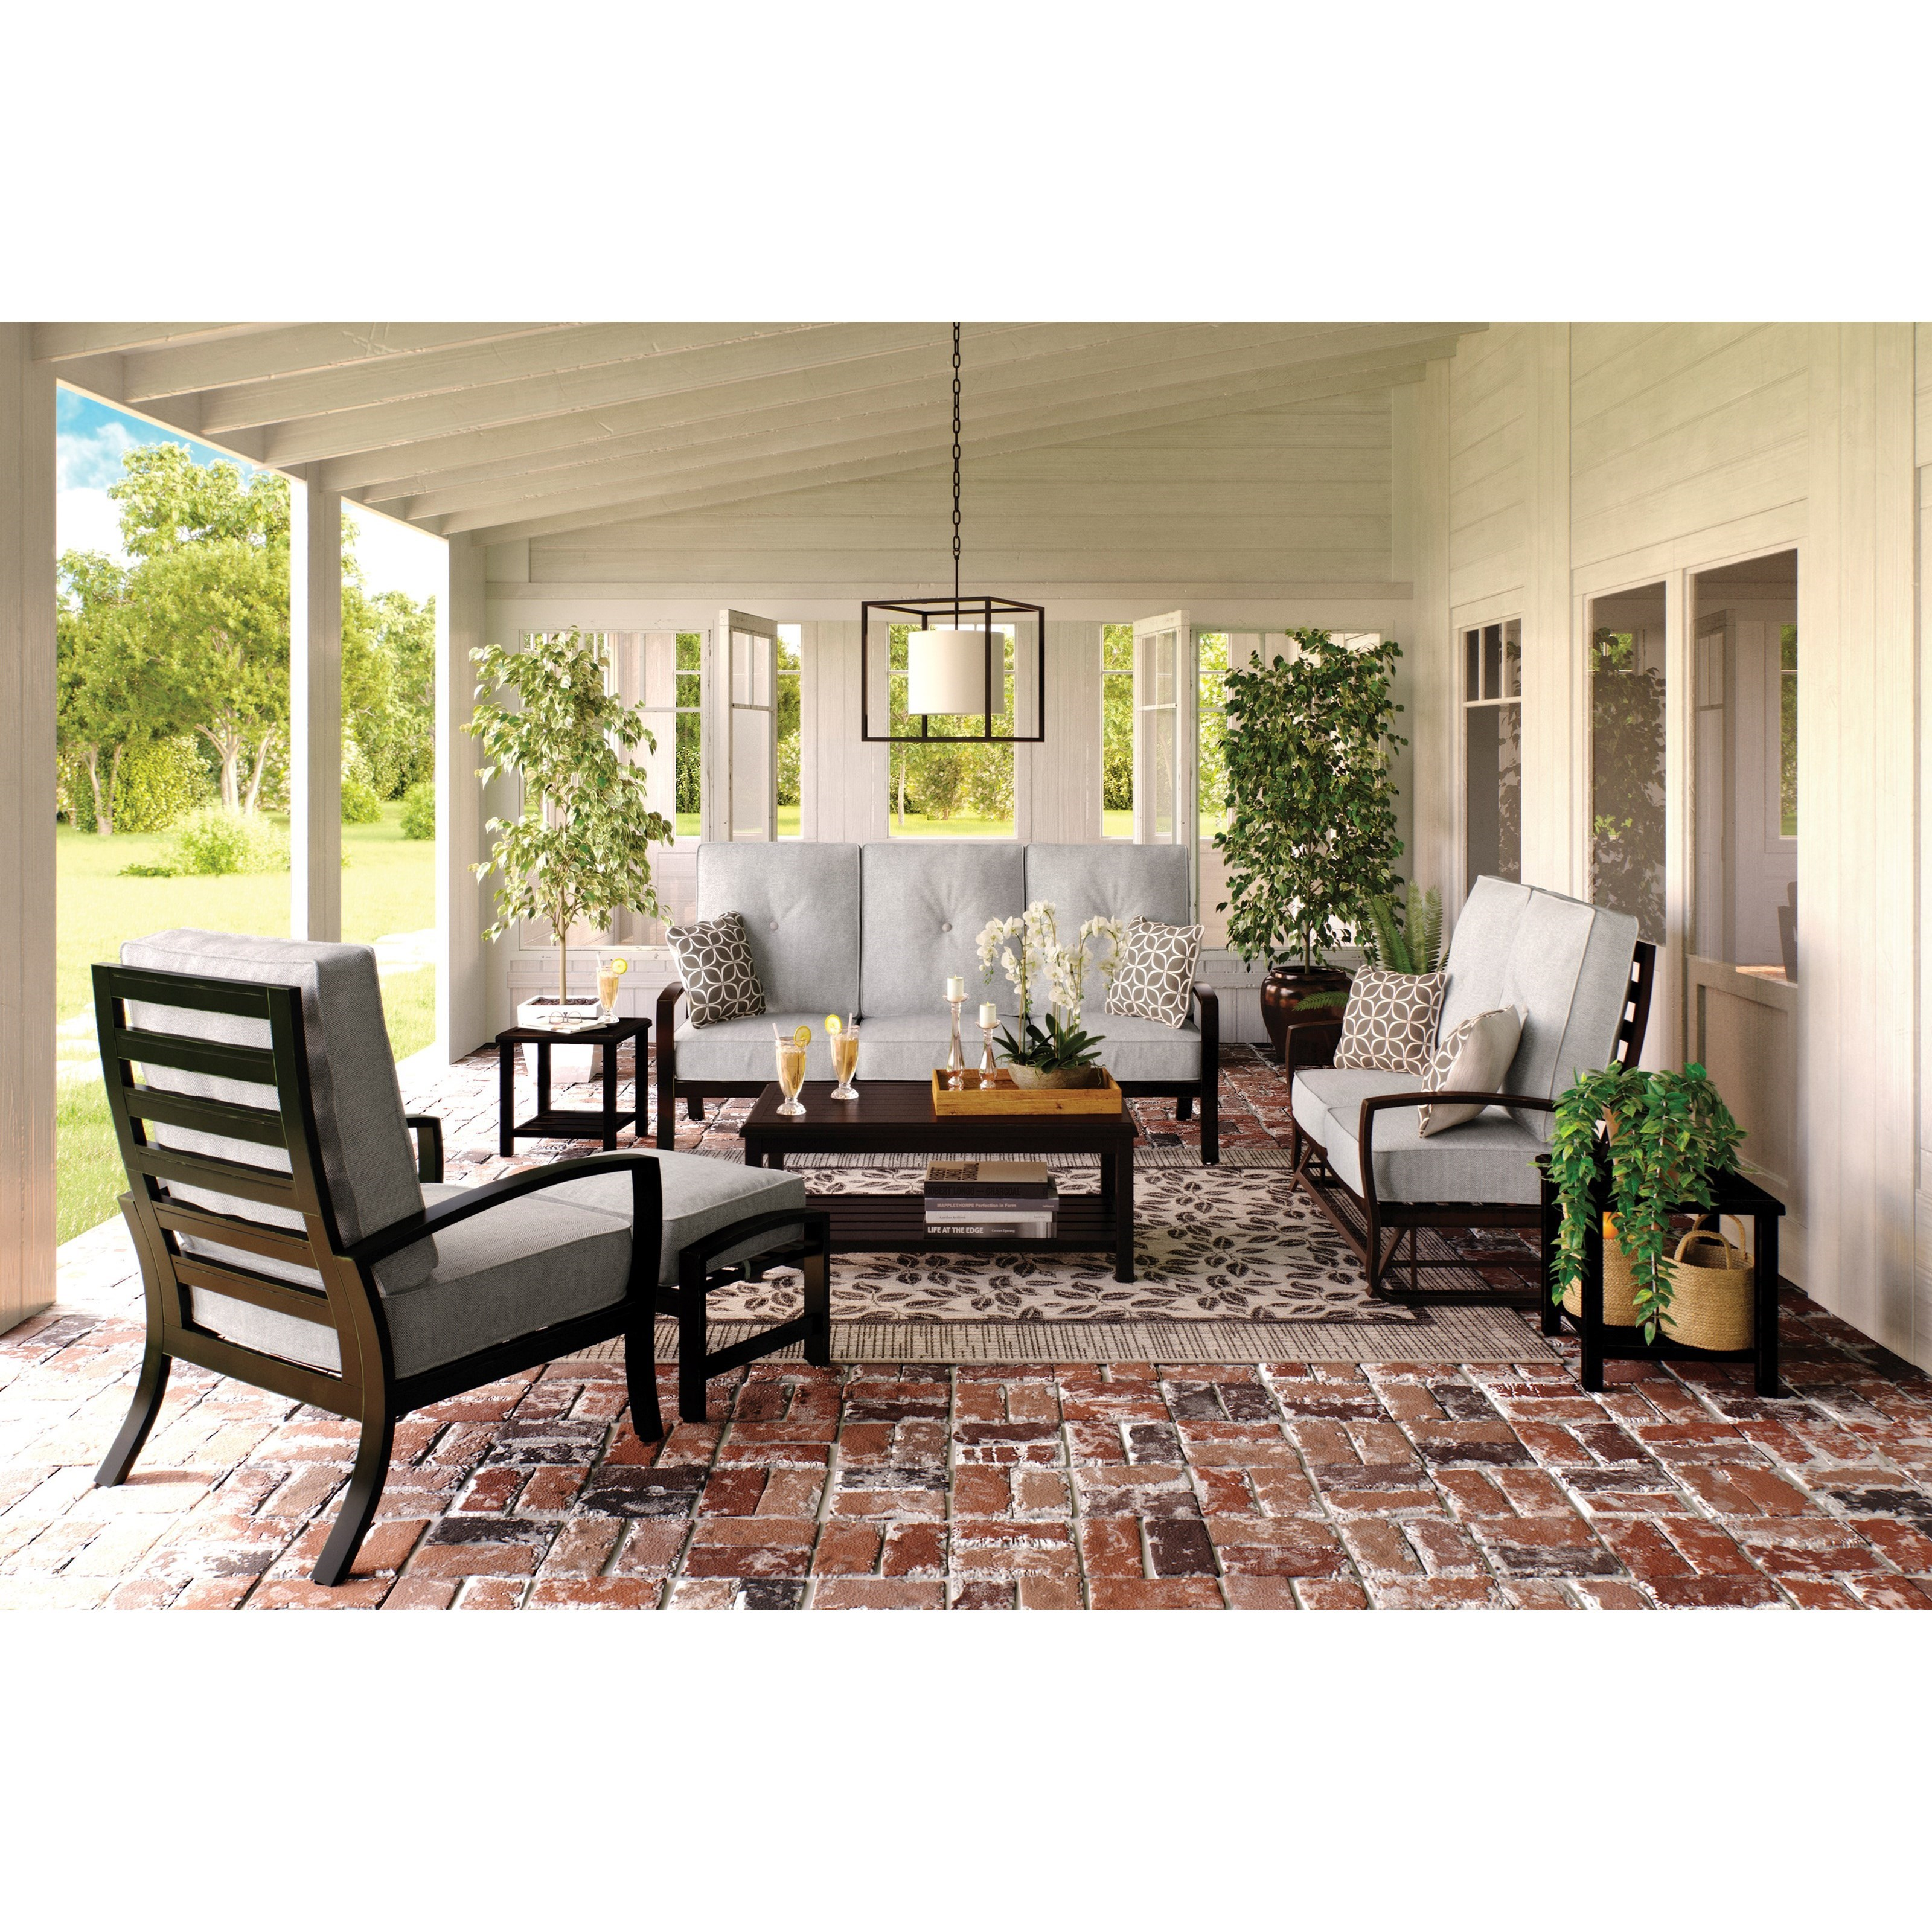 Castle Island Outdoor Conversation Set by Signature Design at Fisher Home Furnishings